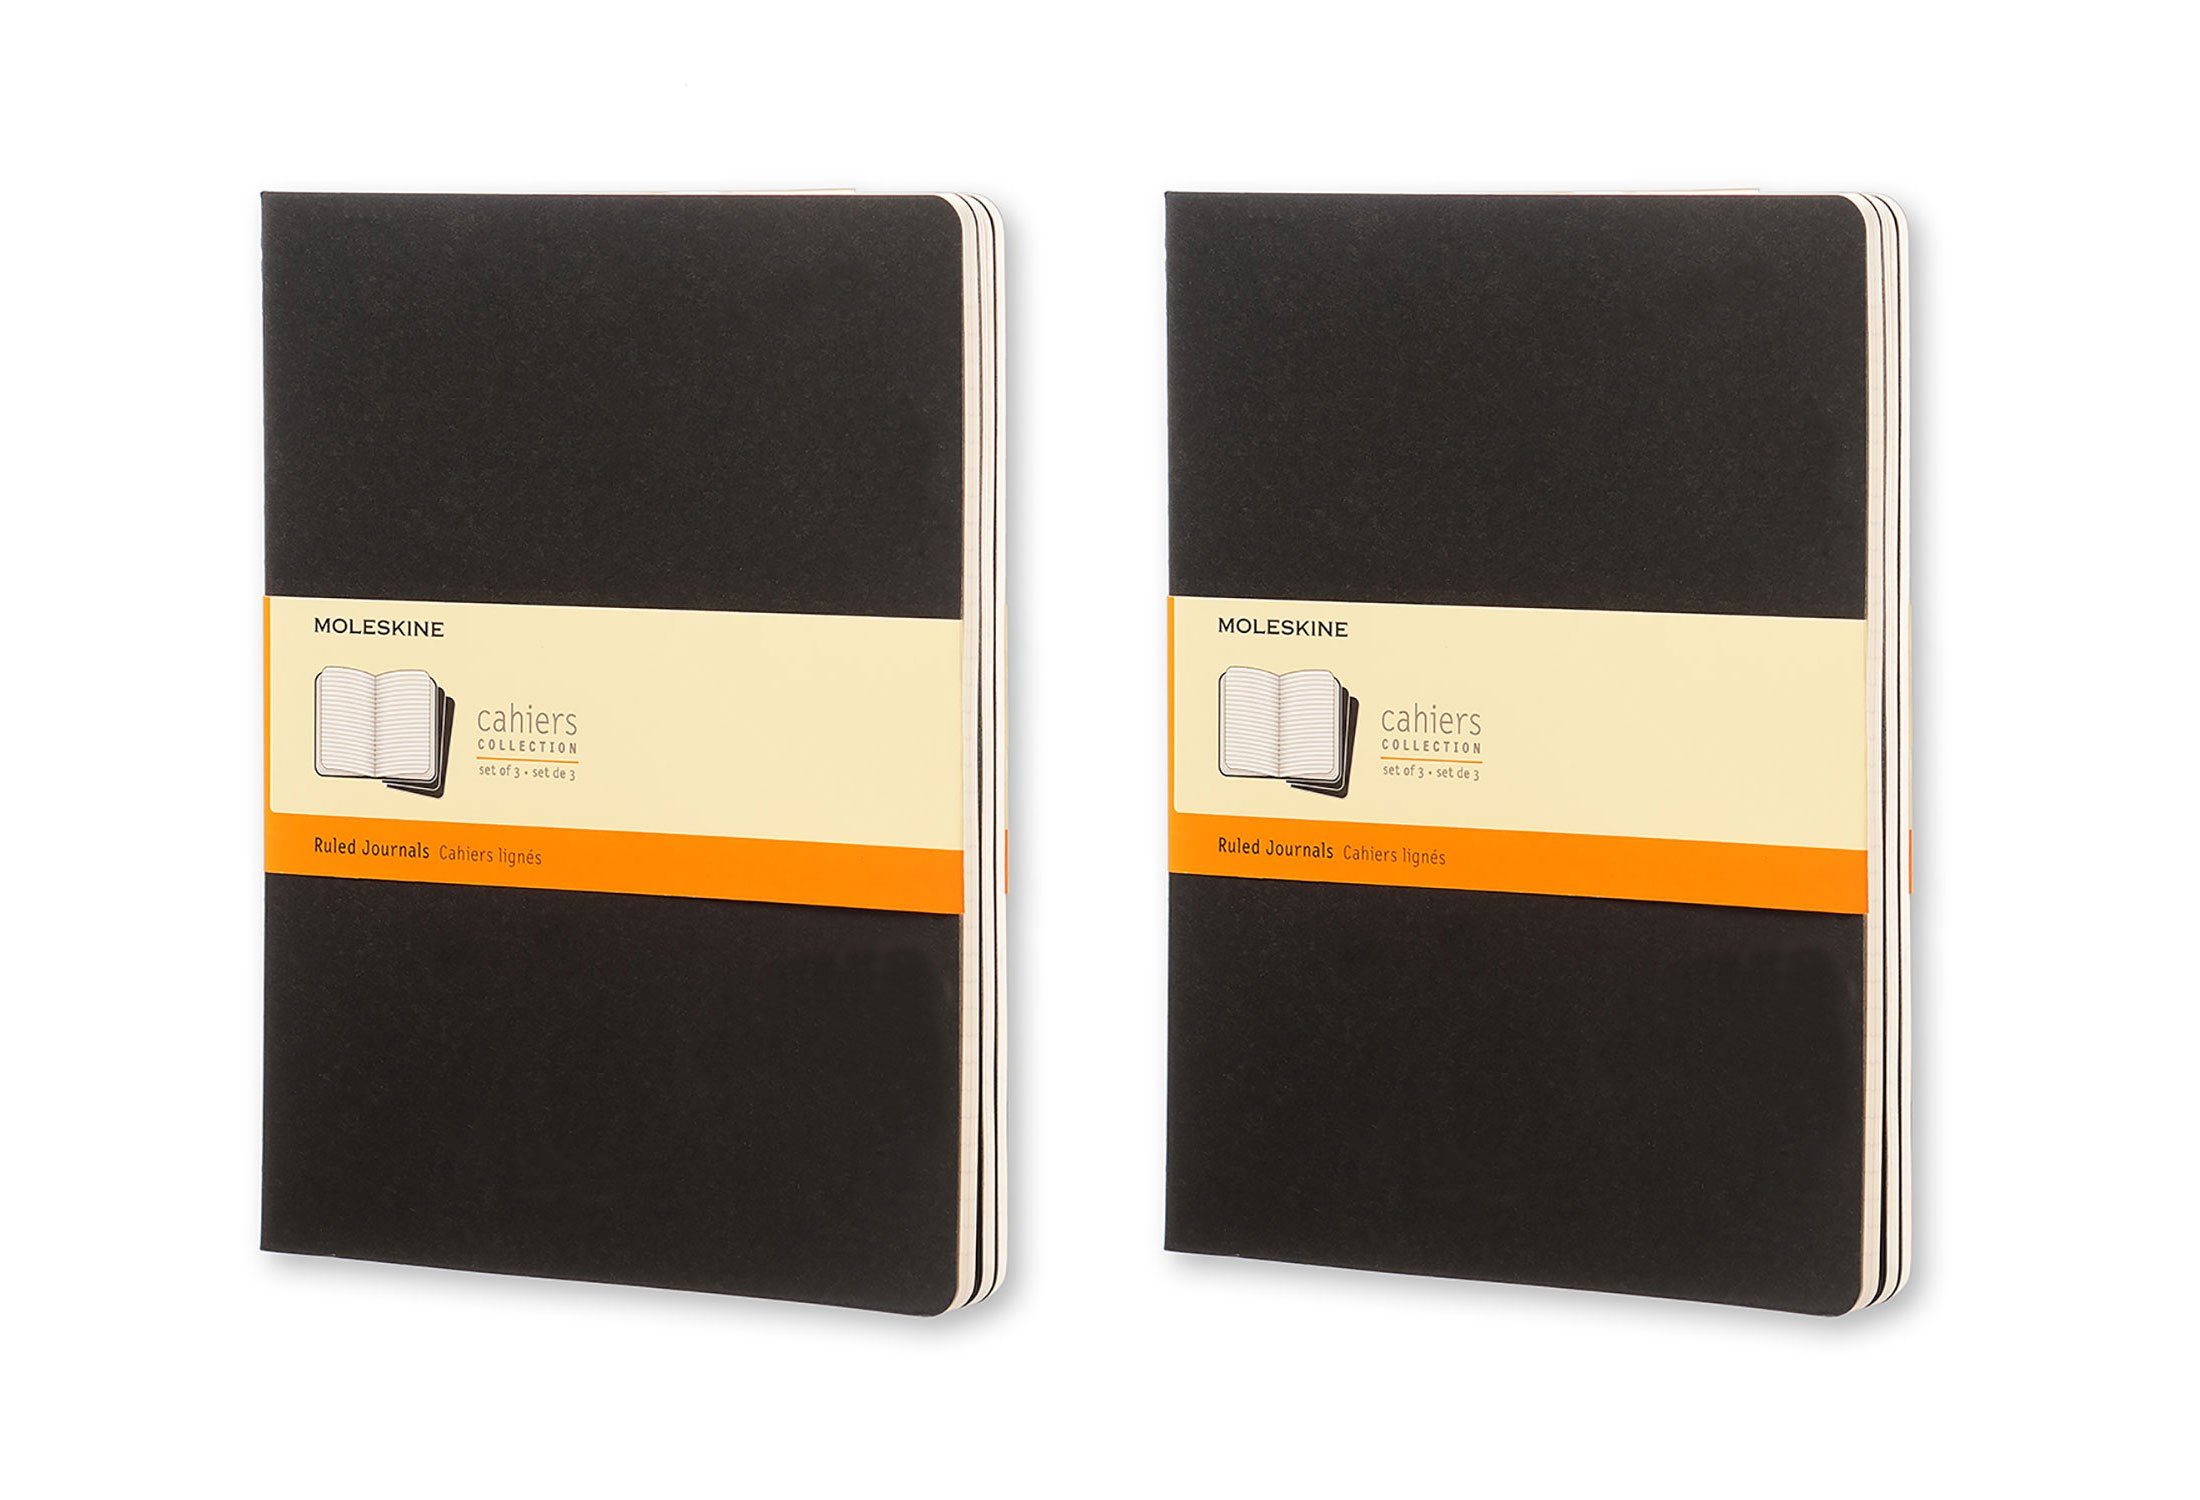 Moleskine Classic Notebook, Set of 6 Cahiers Collection Notebooks, Softcover, 120 Lined Pages Each, Ruled. Each Journal is 7.5 Inches Wide by 10 Inches Tall by 1/8 Inch Thick (Black)